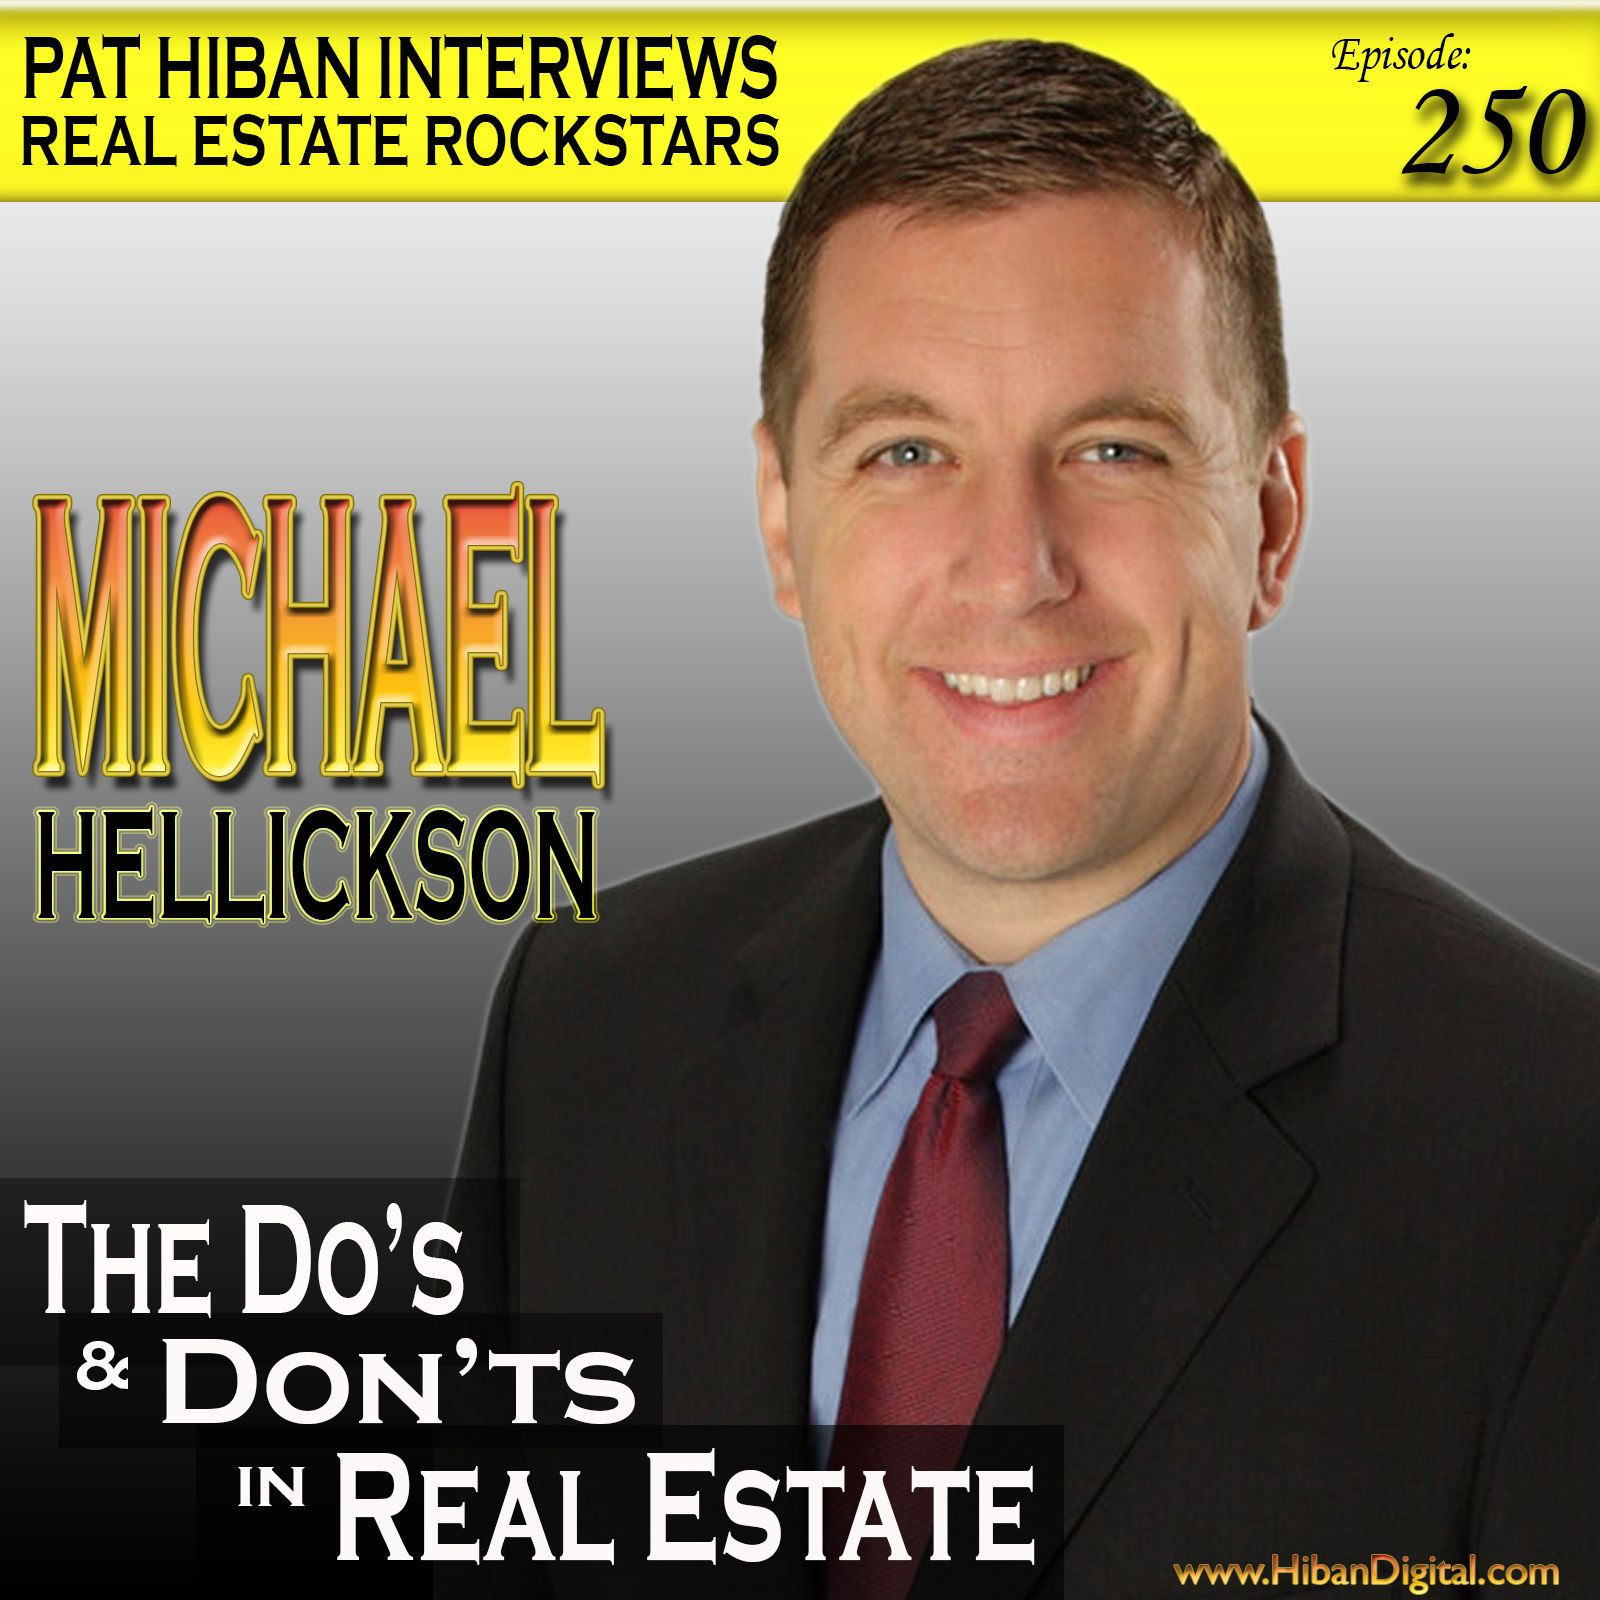 Michael Hellickson is a full-time real estate coach. He has listed/sold over 100 homes/month as an agent. At his peak,Michael carried over 750 listings, 44 team members and $5mil in pending commissions... #realestate #podcast #pathiban #hibandigital #hibangroup #HIBAN #realestatesales #realestateagent #realestateagents #selling #sales #sell #salespeople #salesperson #michaelhellickson